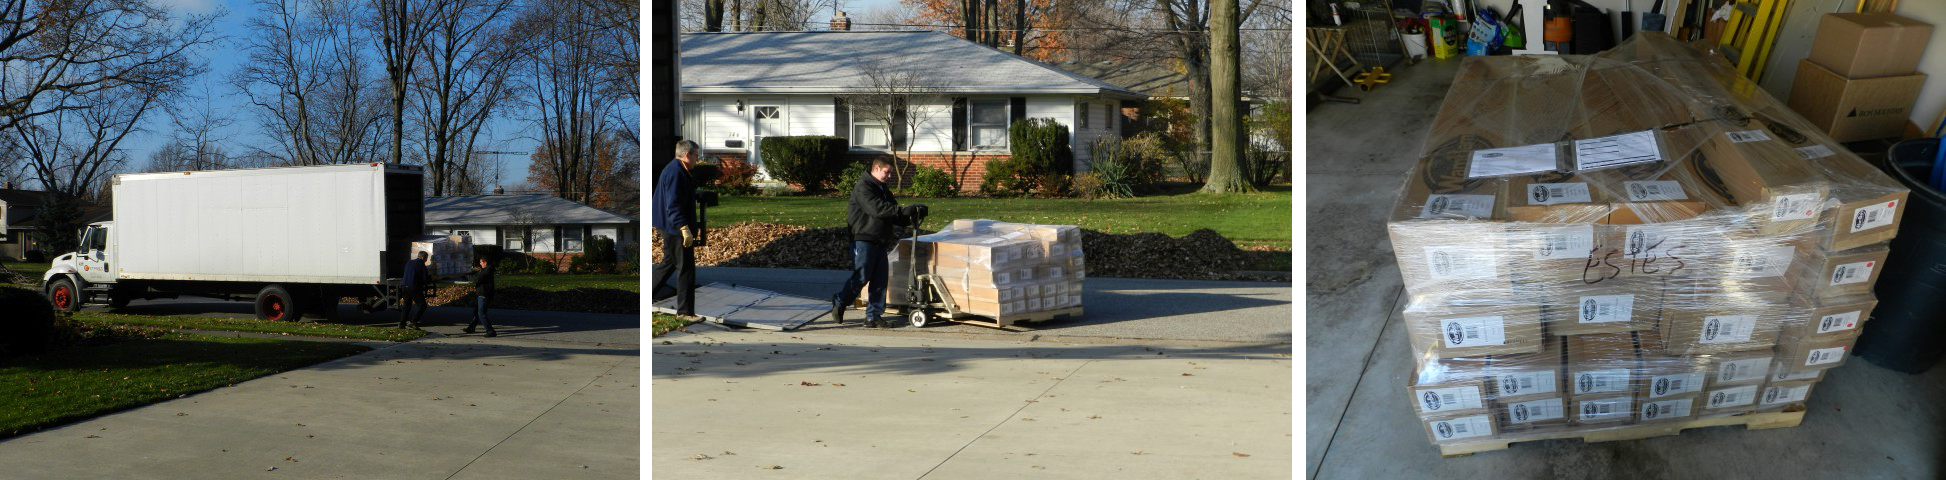 A special delivery comes to the door...what can it be?